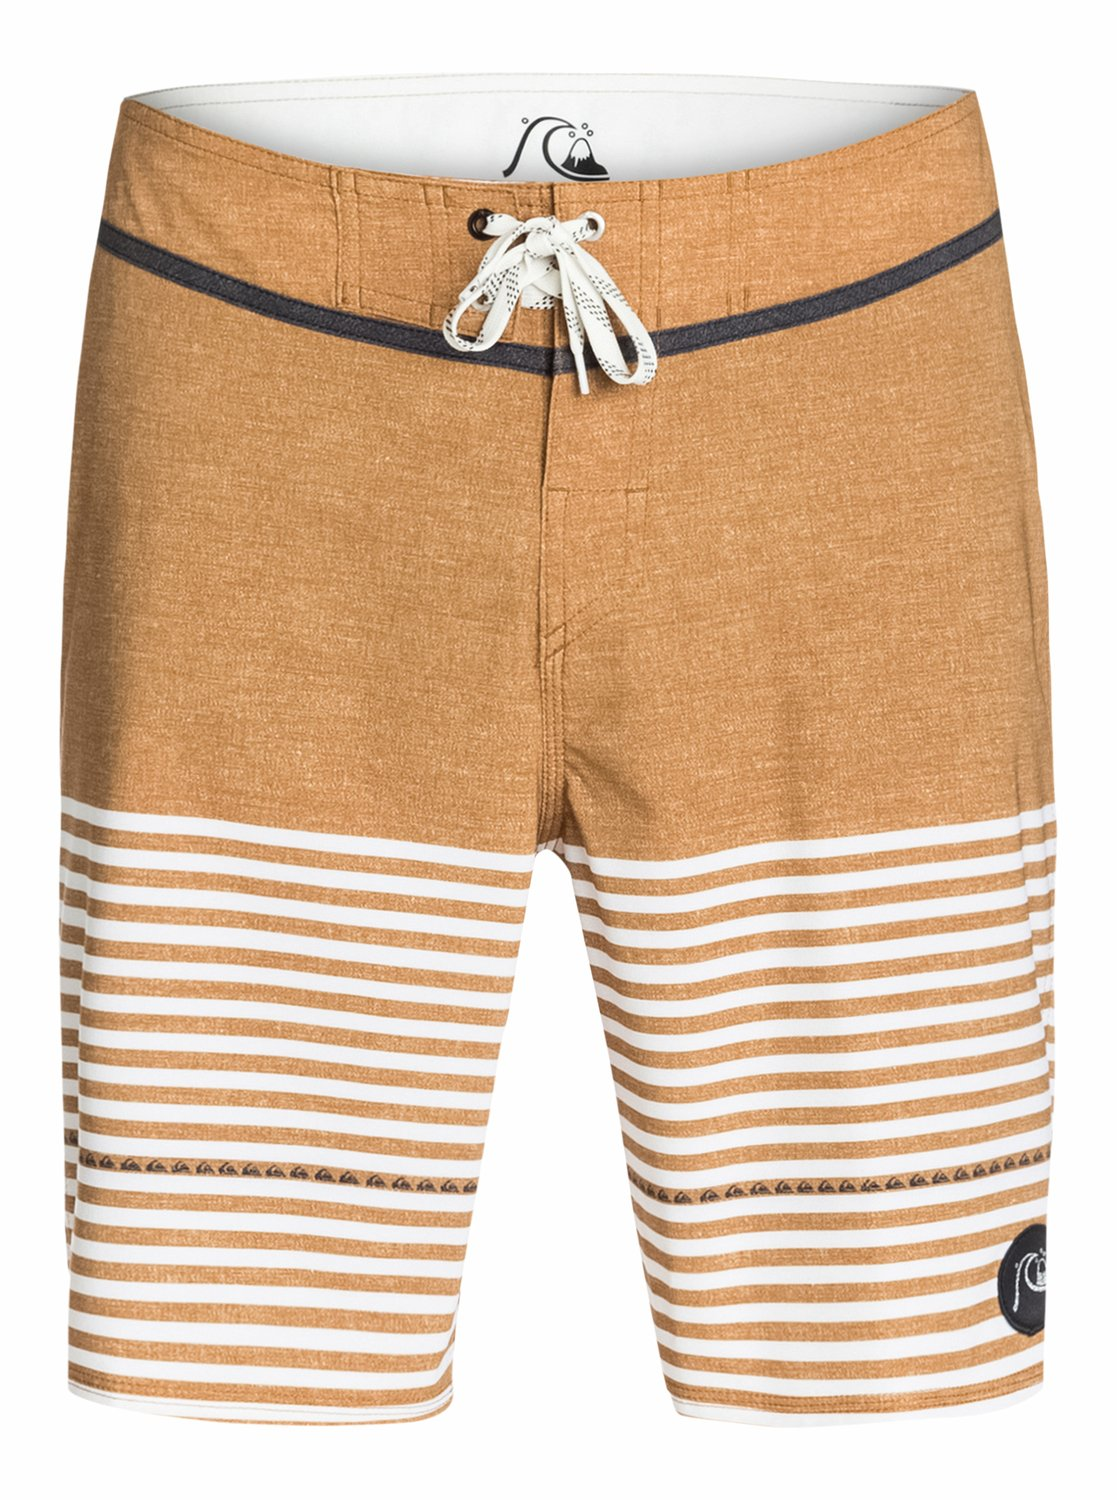 East Side Stripe Uea19 - Quiksilver - Quiksilver������� ��������� �� Quiksilver � ������� �� ��������� ����� 2015. ��������������: ���������� ����� Dry Flight 4-way Stretch �� ��������������� ����� � ����������������� �������������� � ����������������� ������� Scotchgard, �������� ���� Performance Fit, ����� 48.3 �� �� �������� ���.<br>